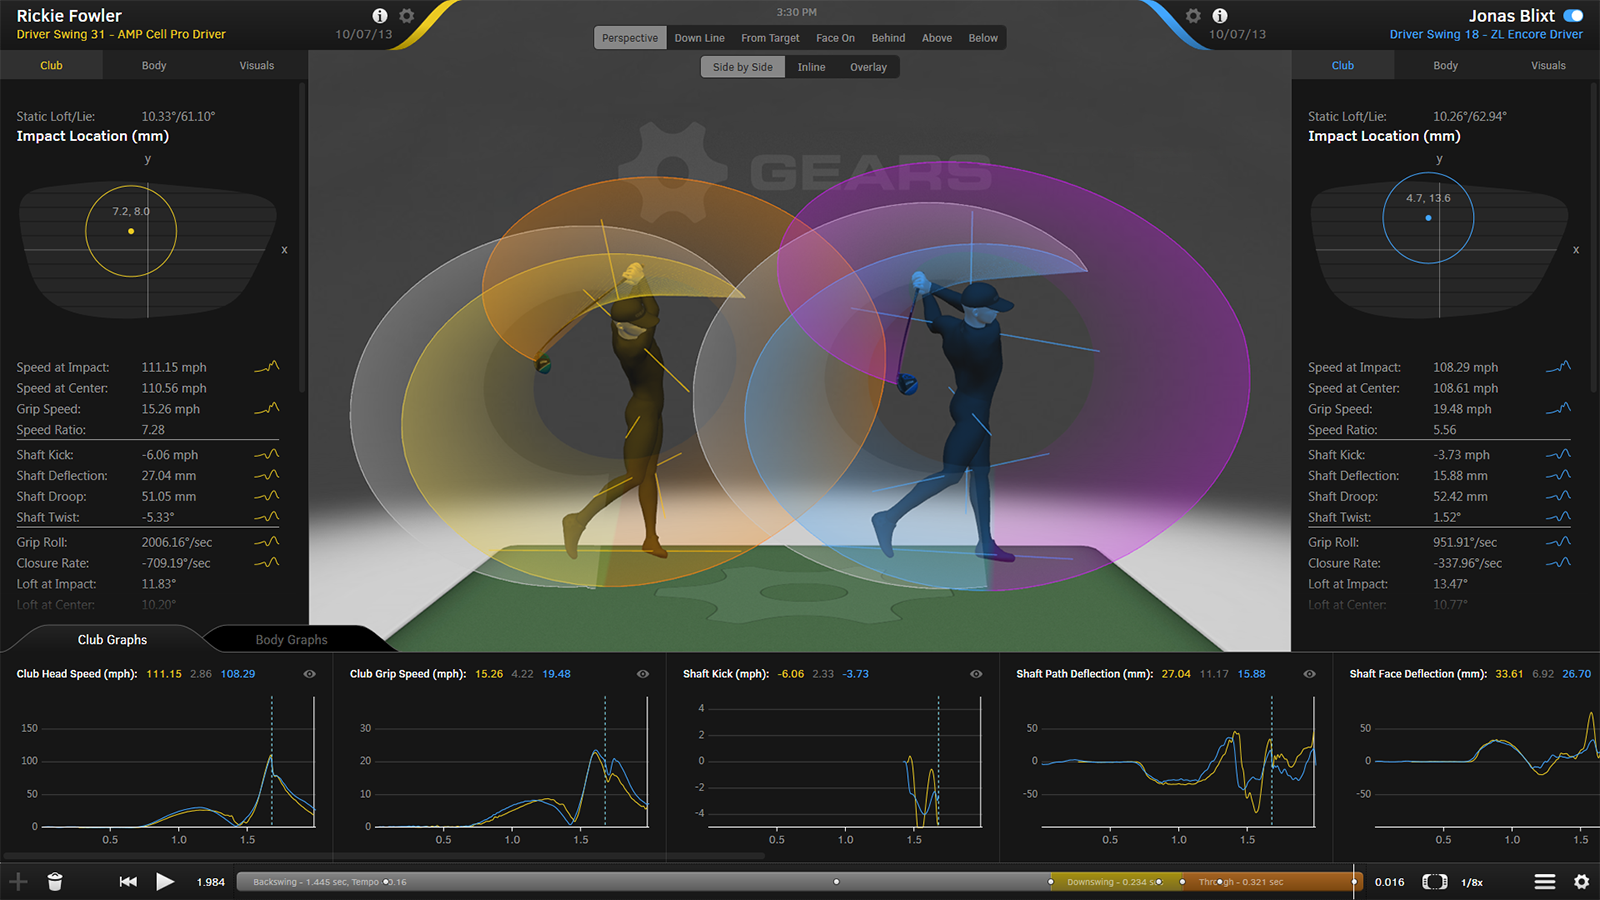 Golf technology Gears analyzes a golf swing